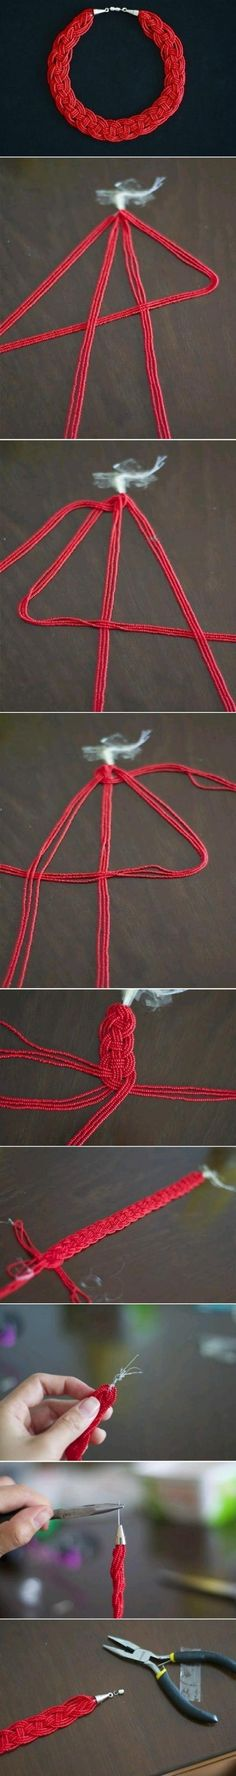 Macrame Bracelet ~ Looks interesting, Im gonna try this